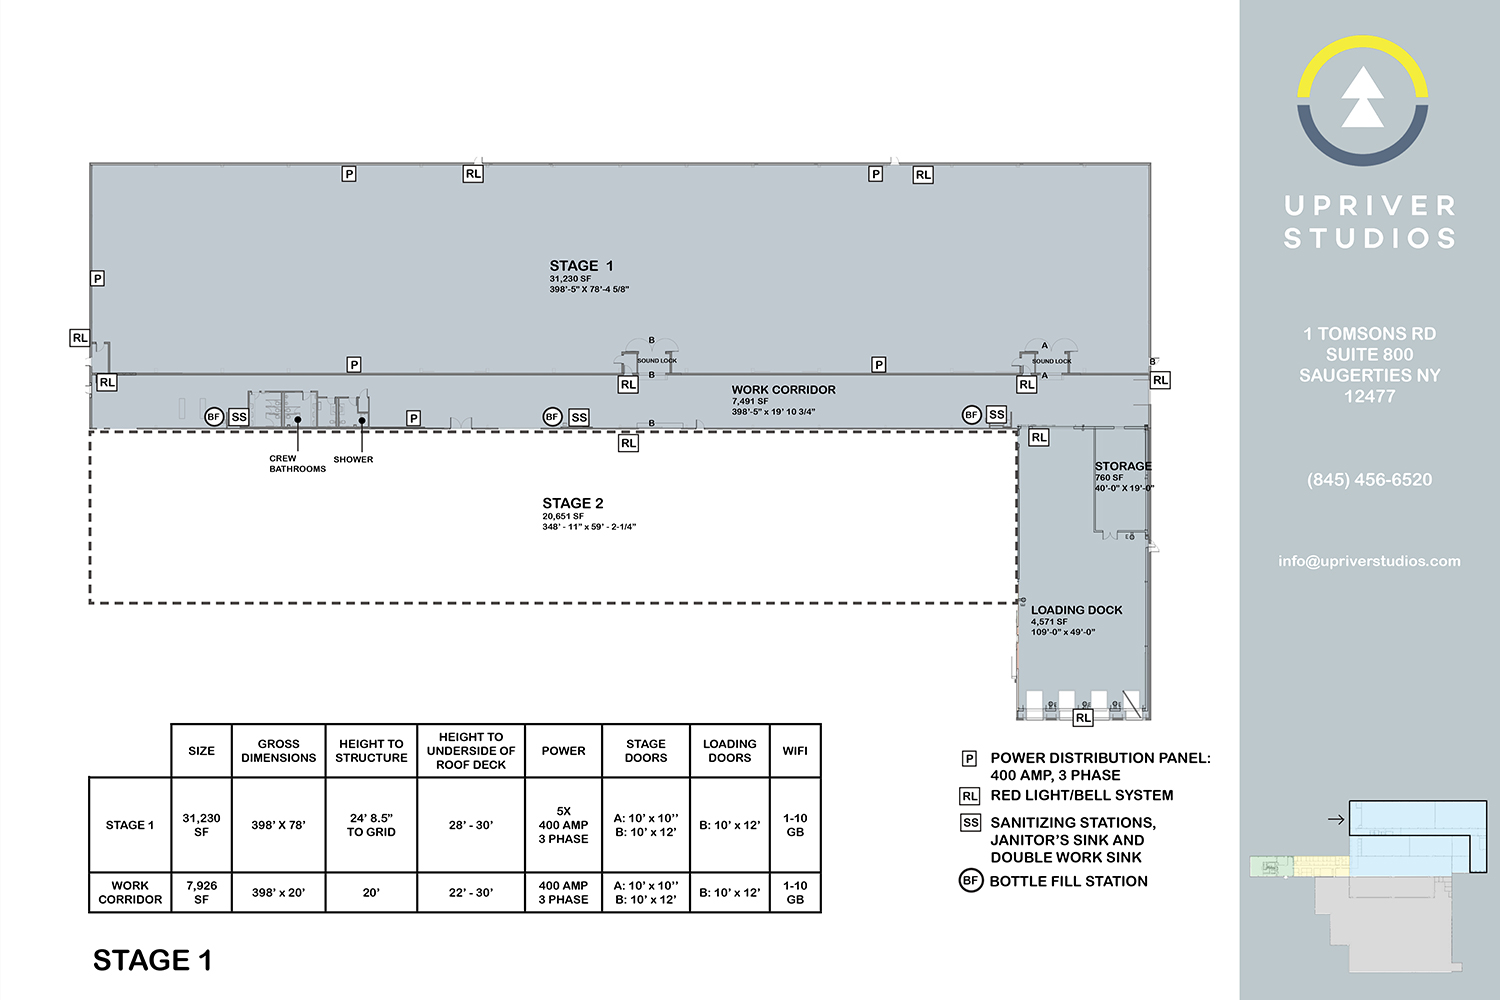 Upriver Studios owned by Masteron, Davenport and Wheeler-Nicholson. WSDG acoustic consulting. Stage 1 drawings and specifications.